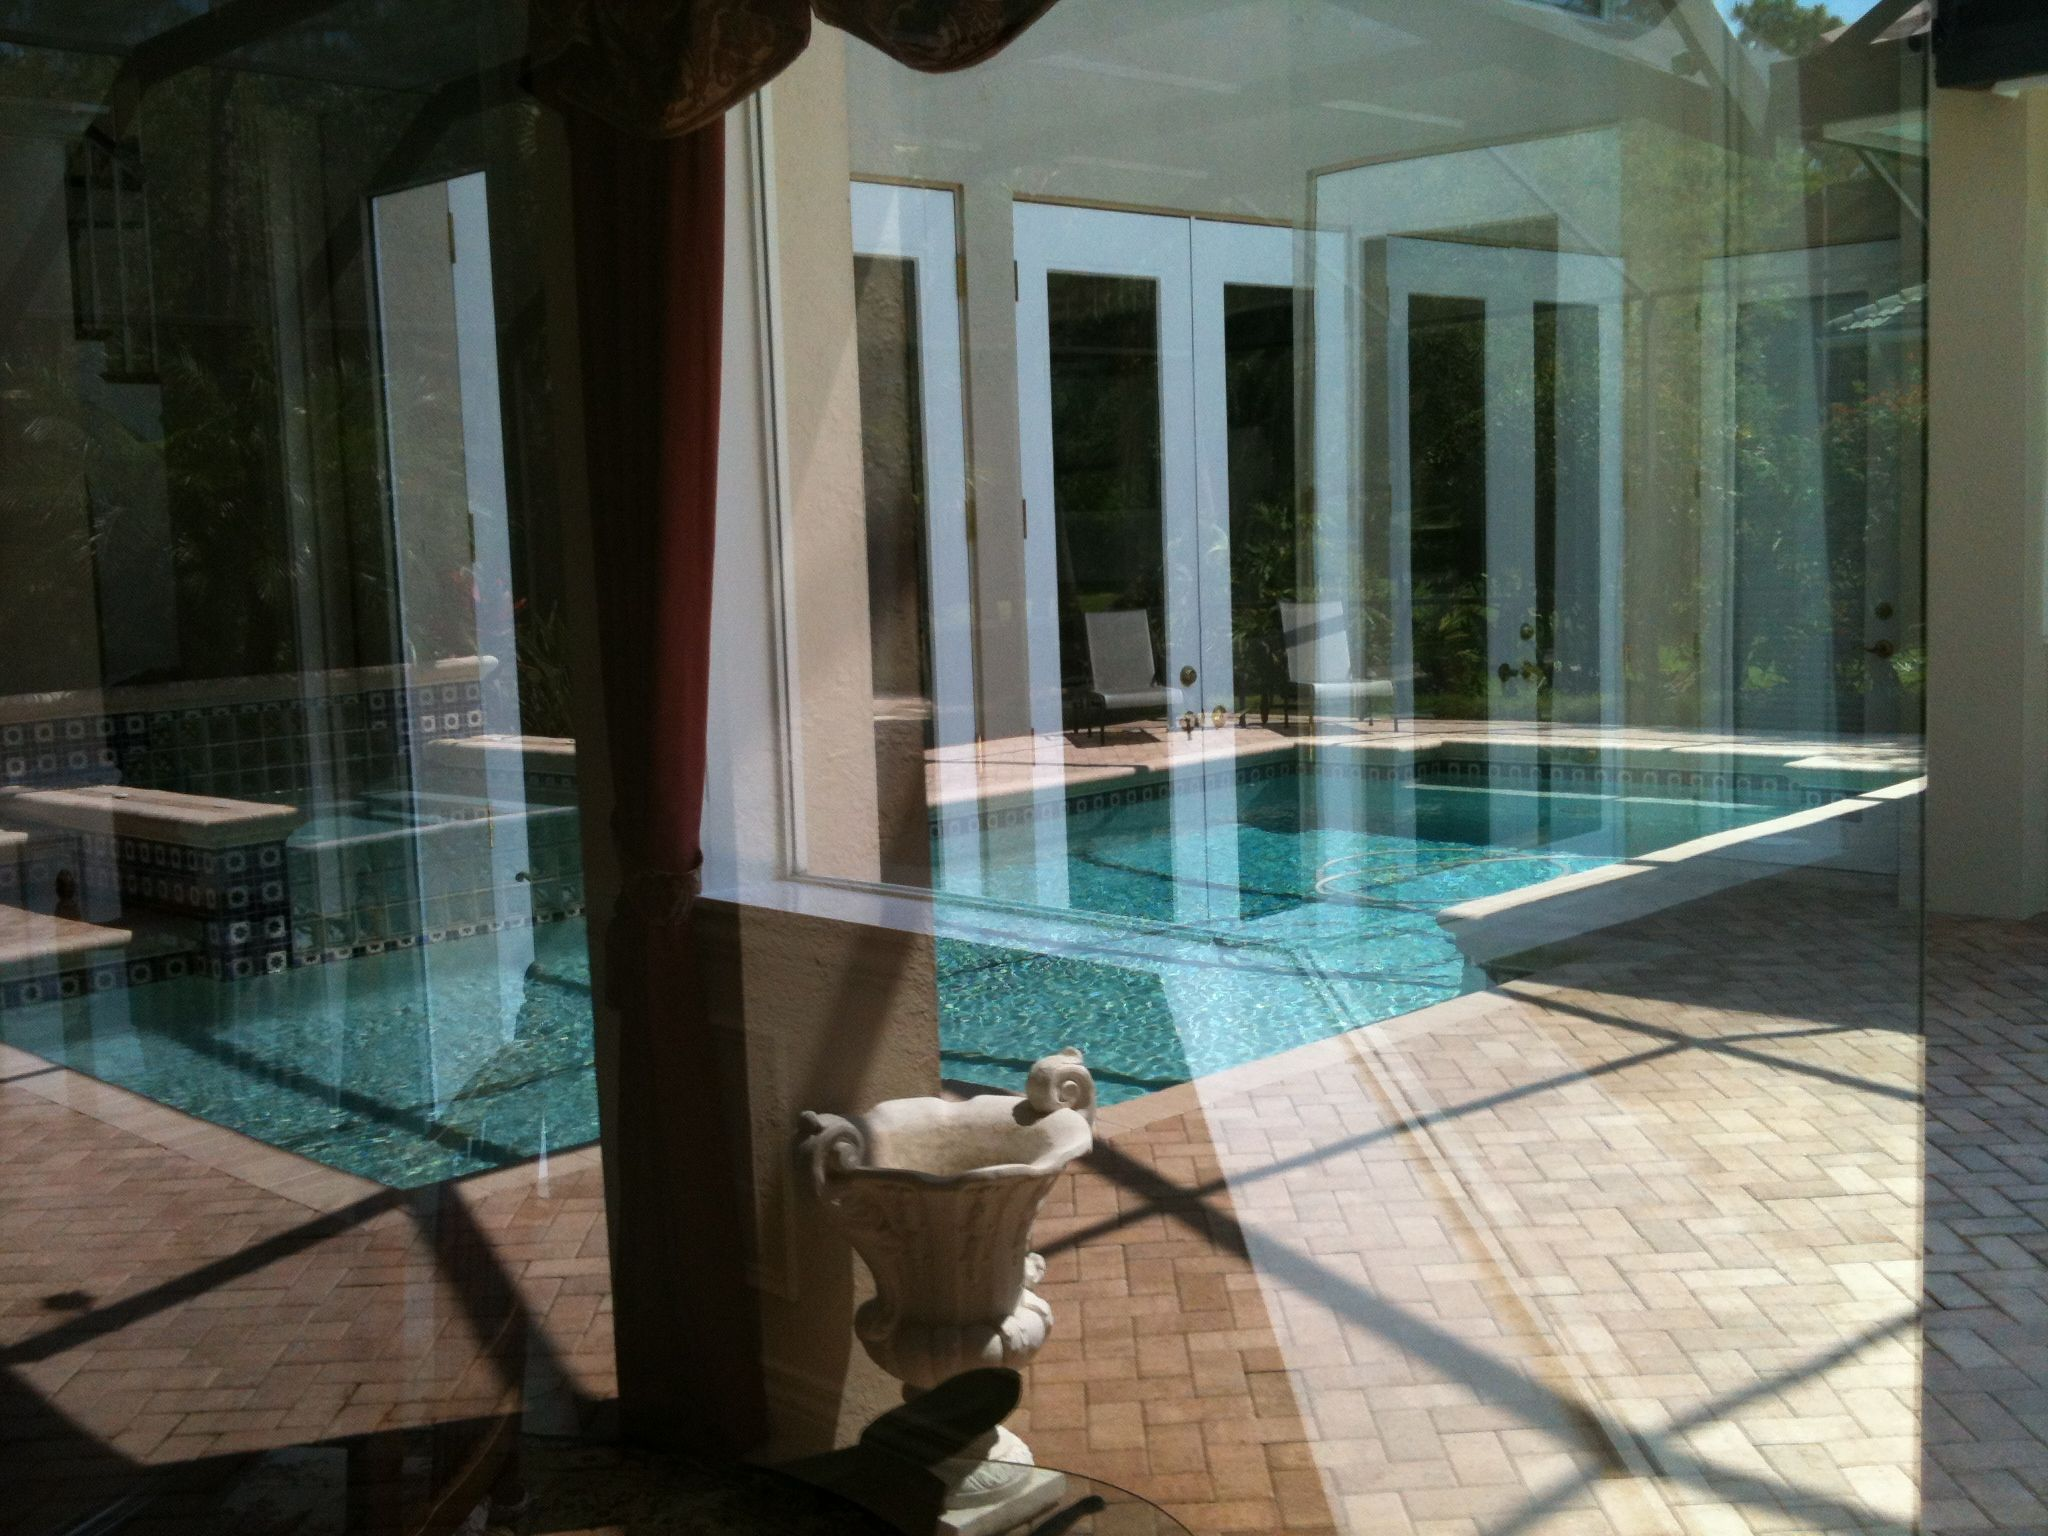 Thorough residential interior and exterior window cleaning